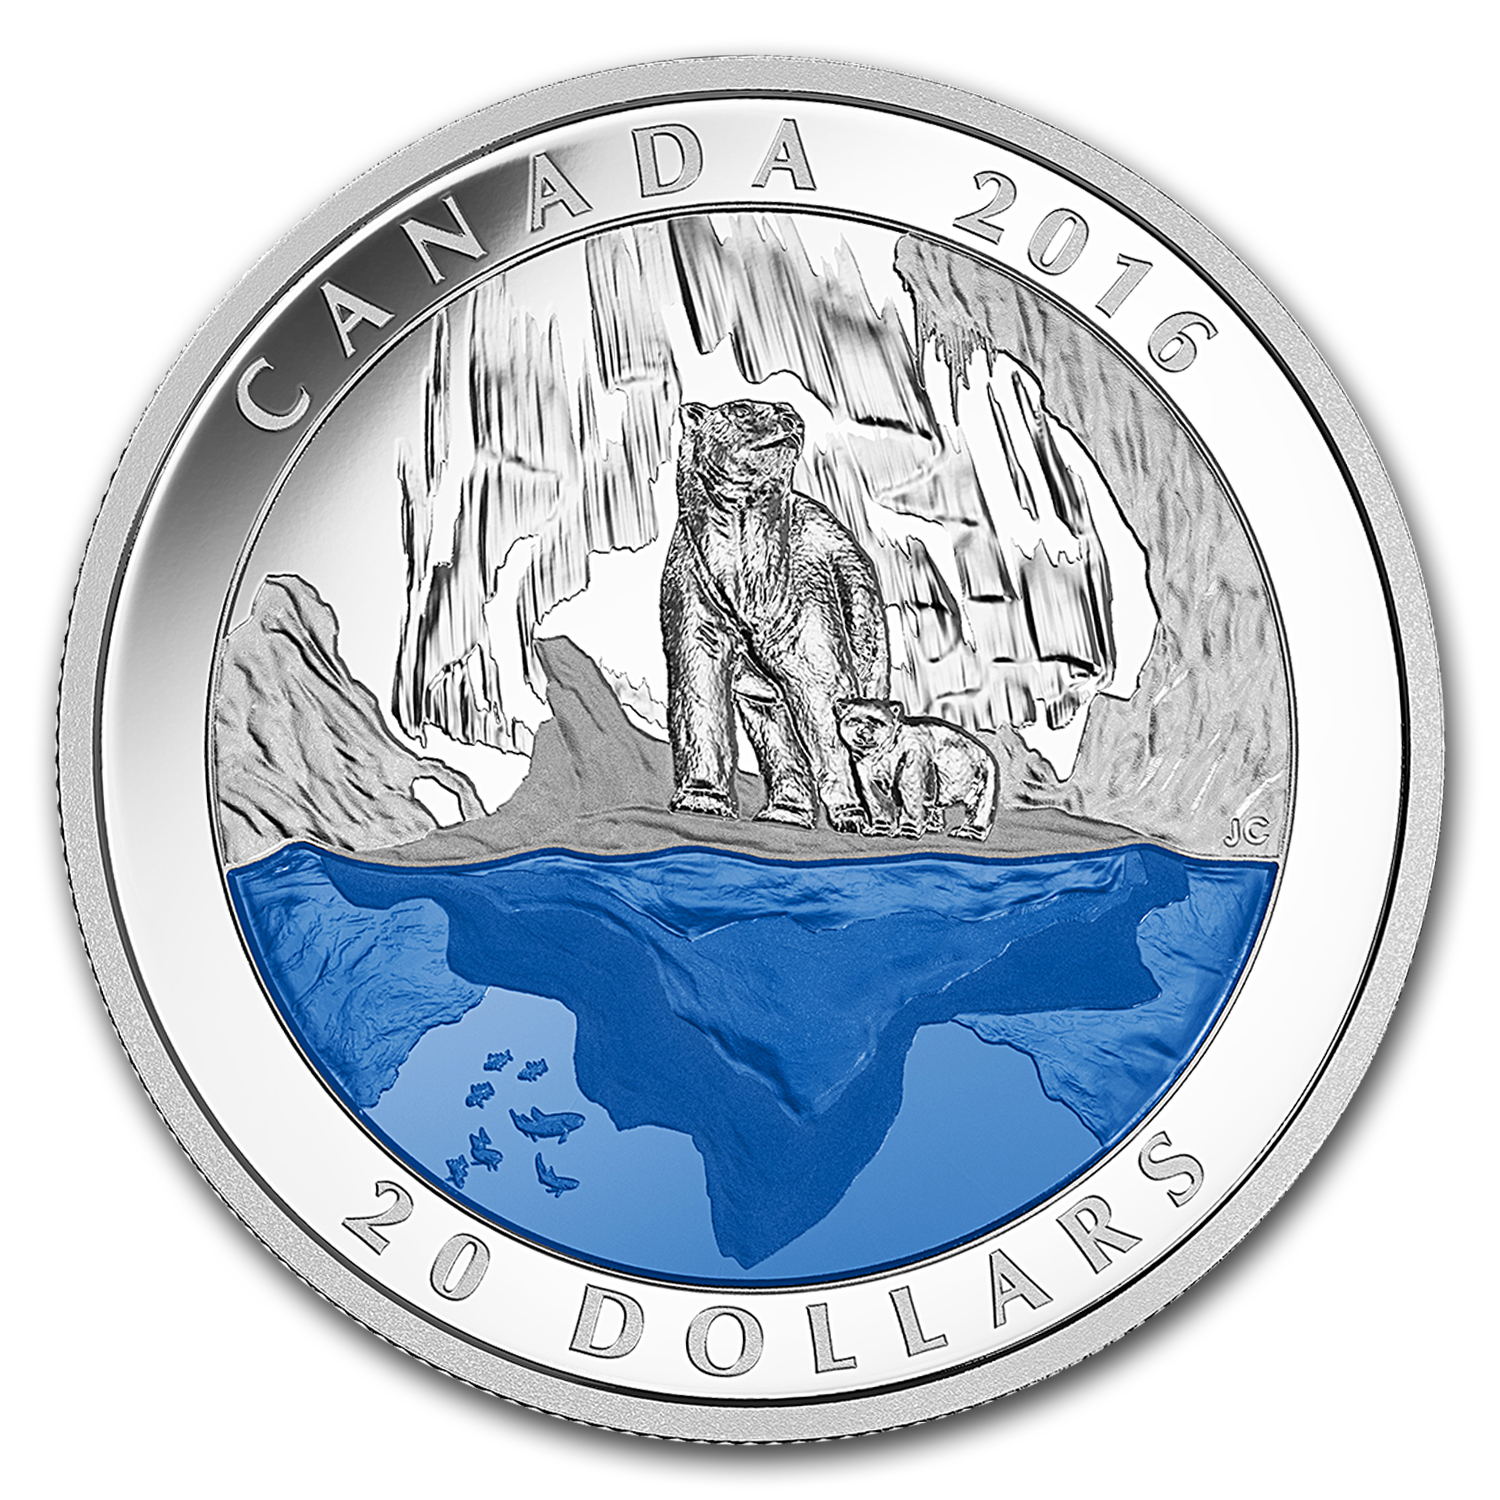 2016 Canada 1 oz Silver $20 Proof Iconic Canada Polar Bear